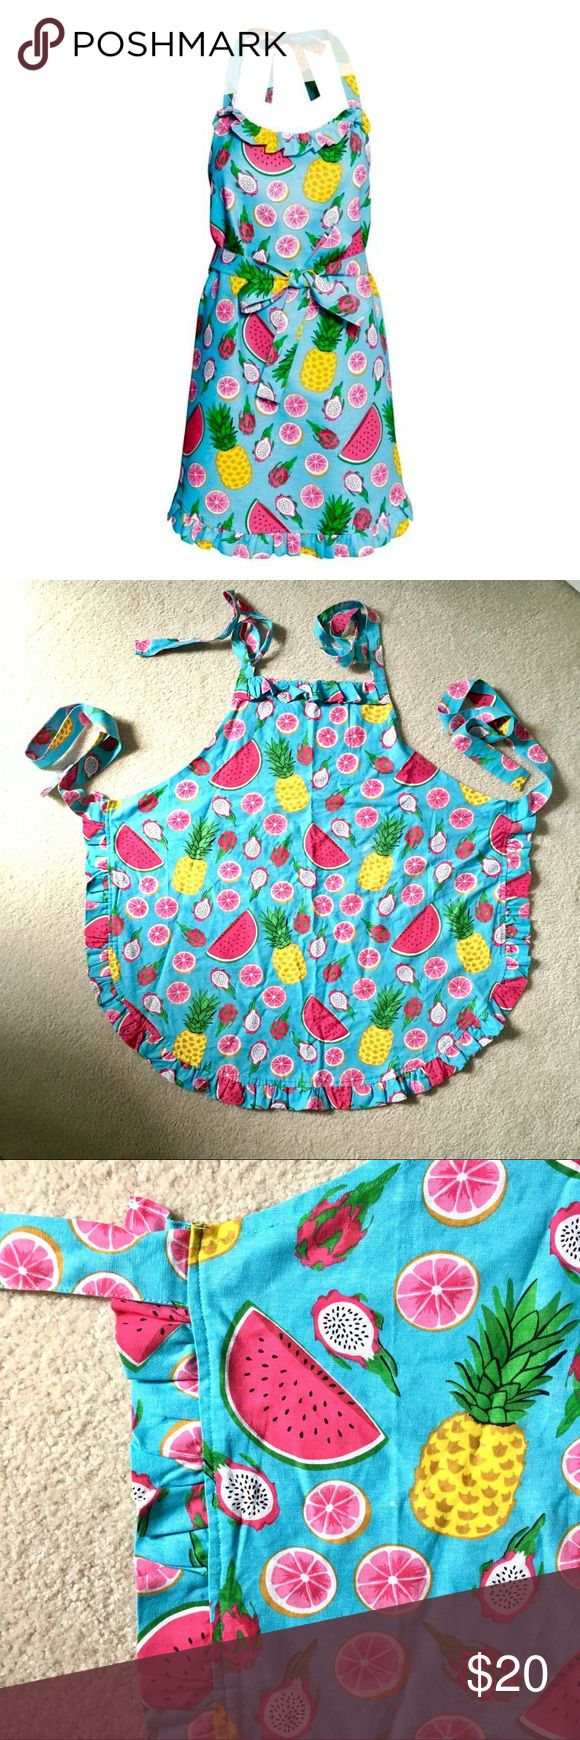 NEW 🍍 tropical fruit apron Tropical fruit patterned apron featuring watermelon, pineapple, dragonfruit, grapefruit. These colors really pop! Cute ruffle detail at the neck and hem. New without tags in perfect condition. H&M Other